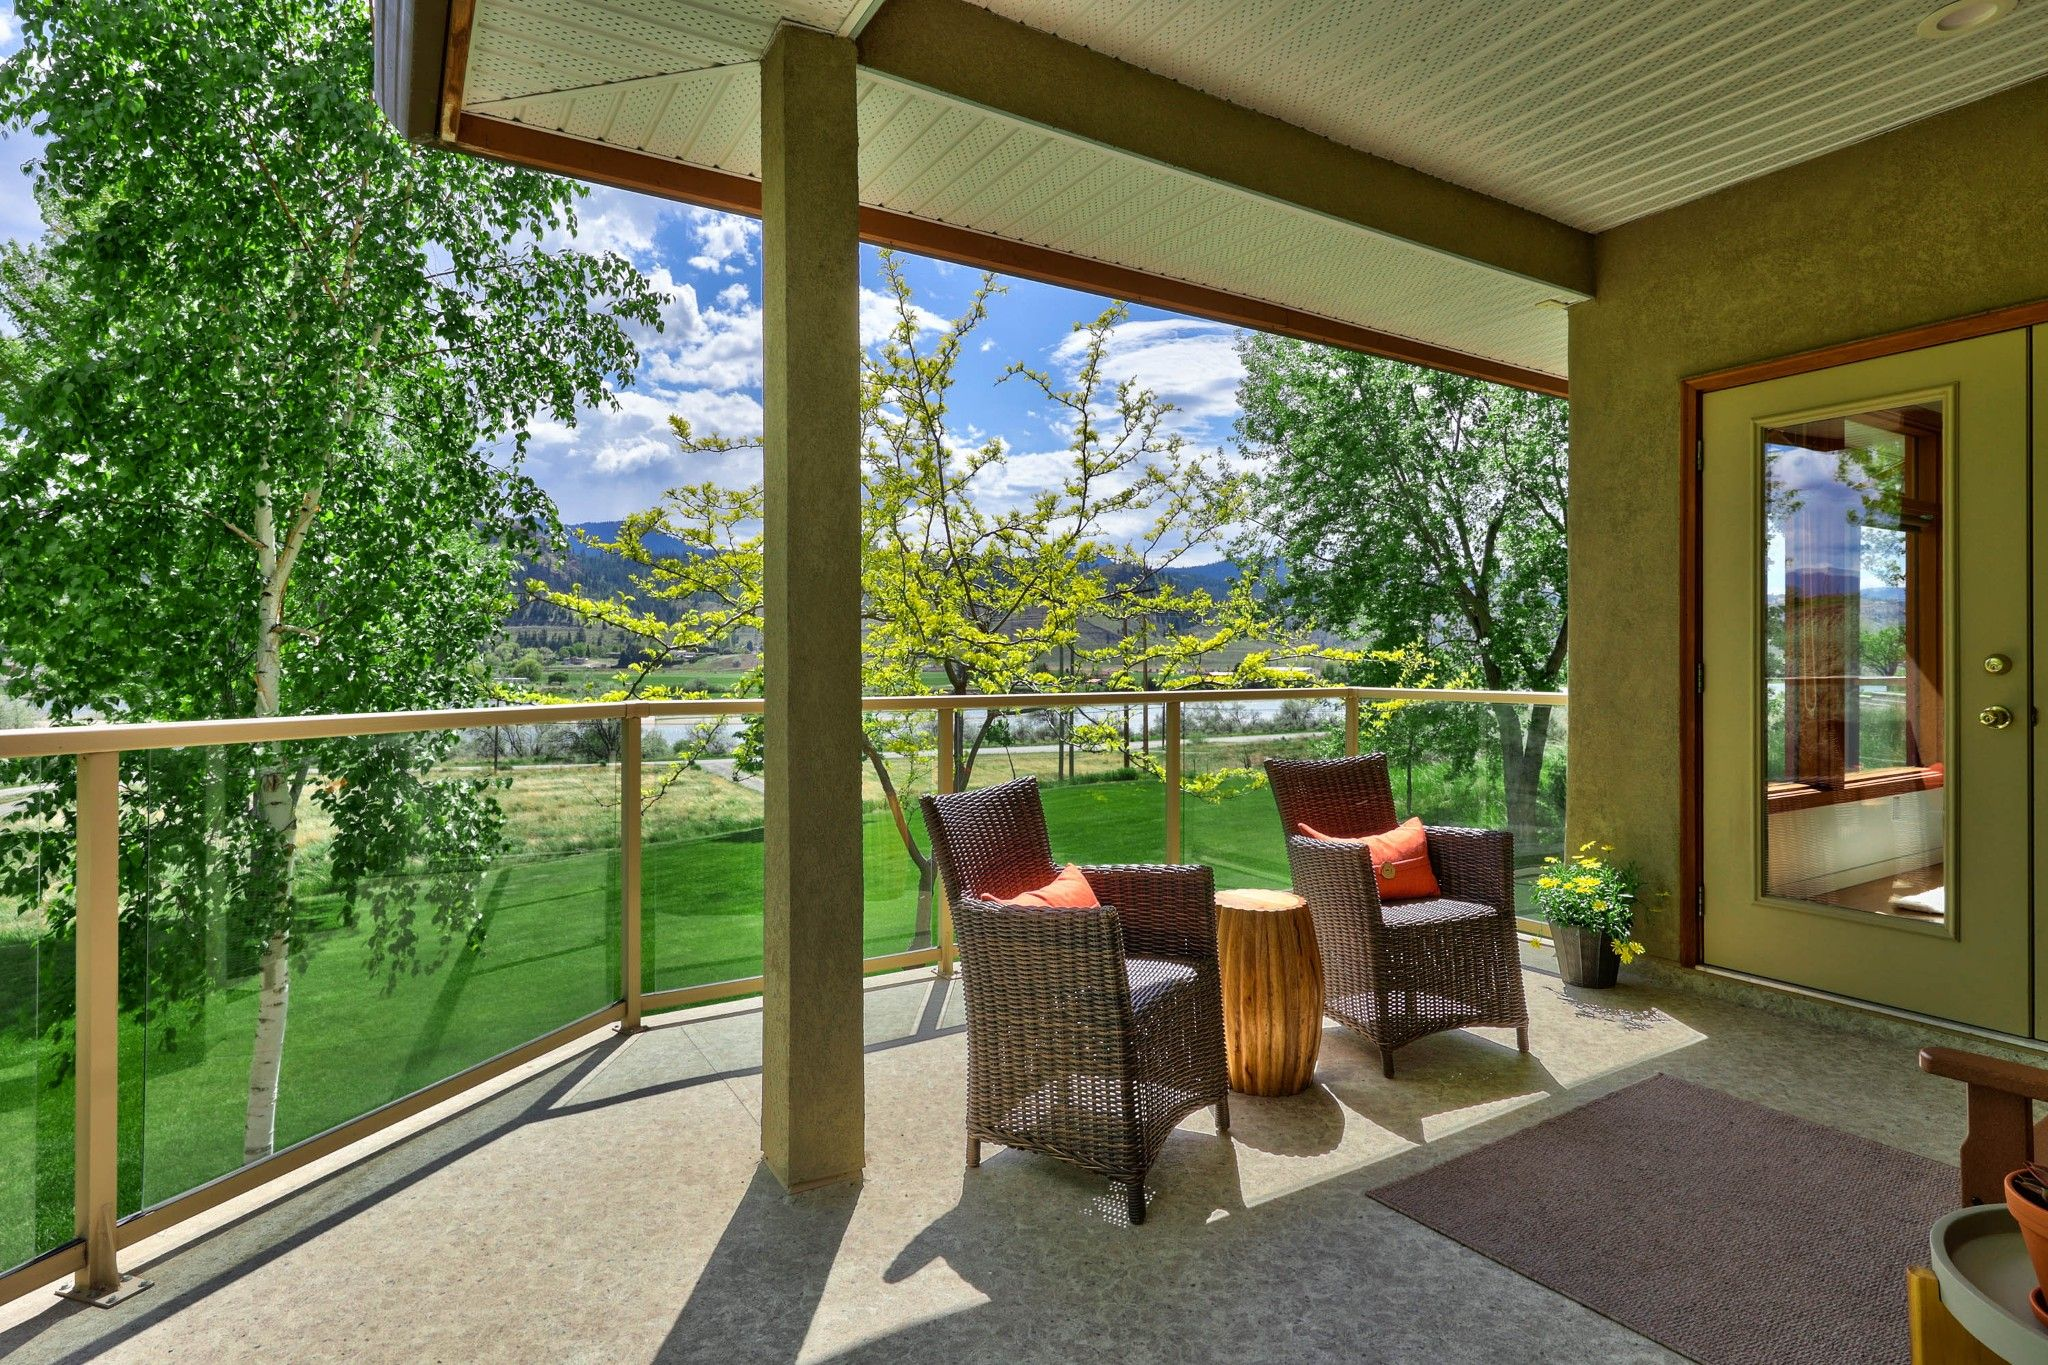 Photo 18: Photos: 3299 E Shuswap Road in Kamloops: South Thompson Valley House for sale : MLS®# 162162